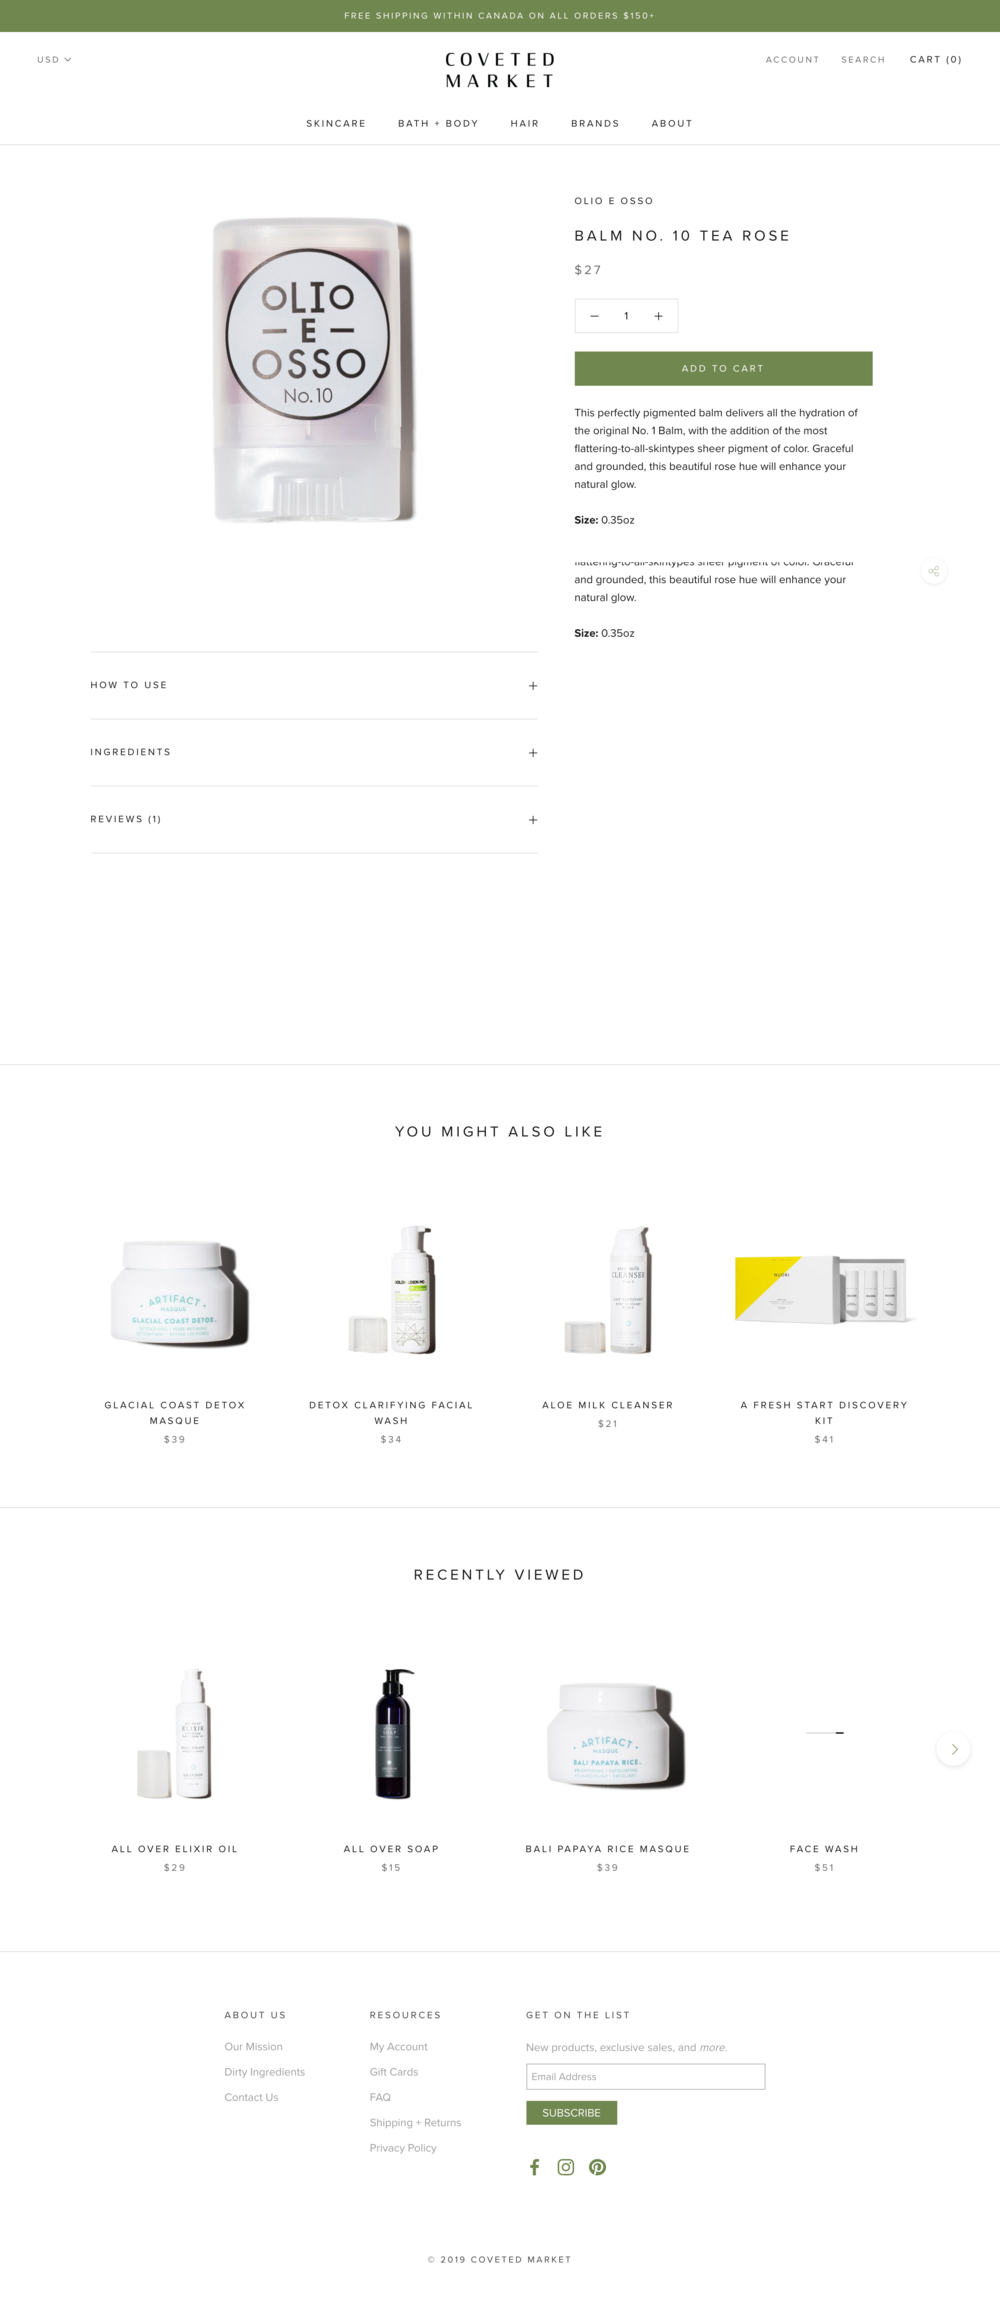 screencapture-covetedmarket-collections-skincare-products-balm-no-10-tea-rose-2019-01-12-14_21_53.png